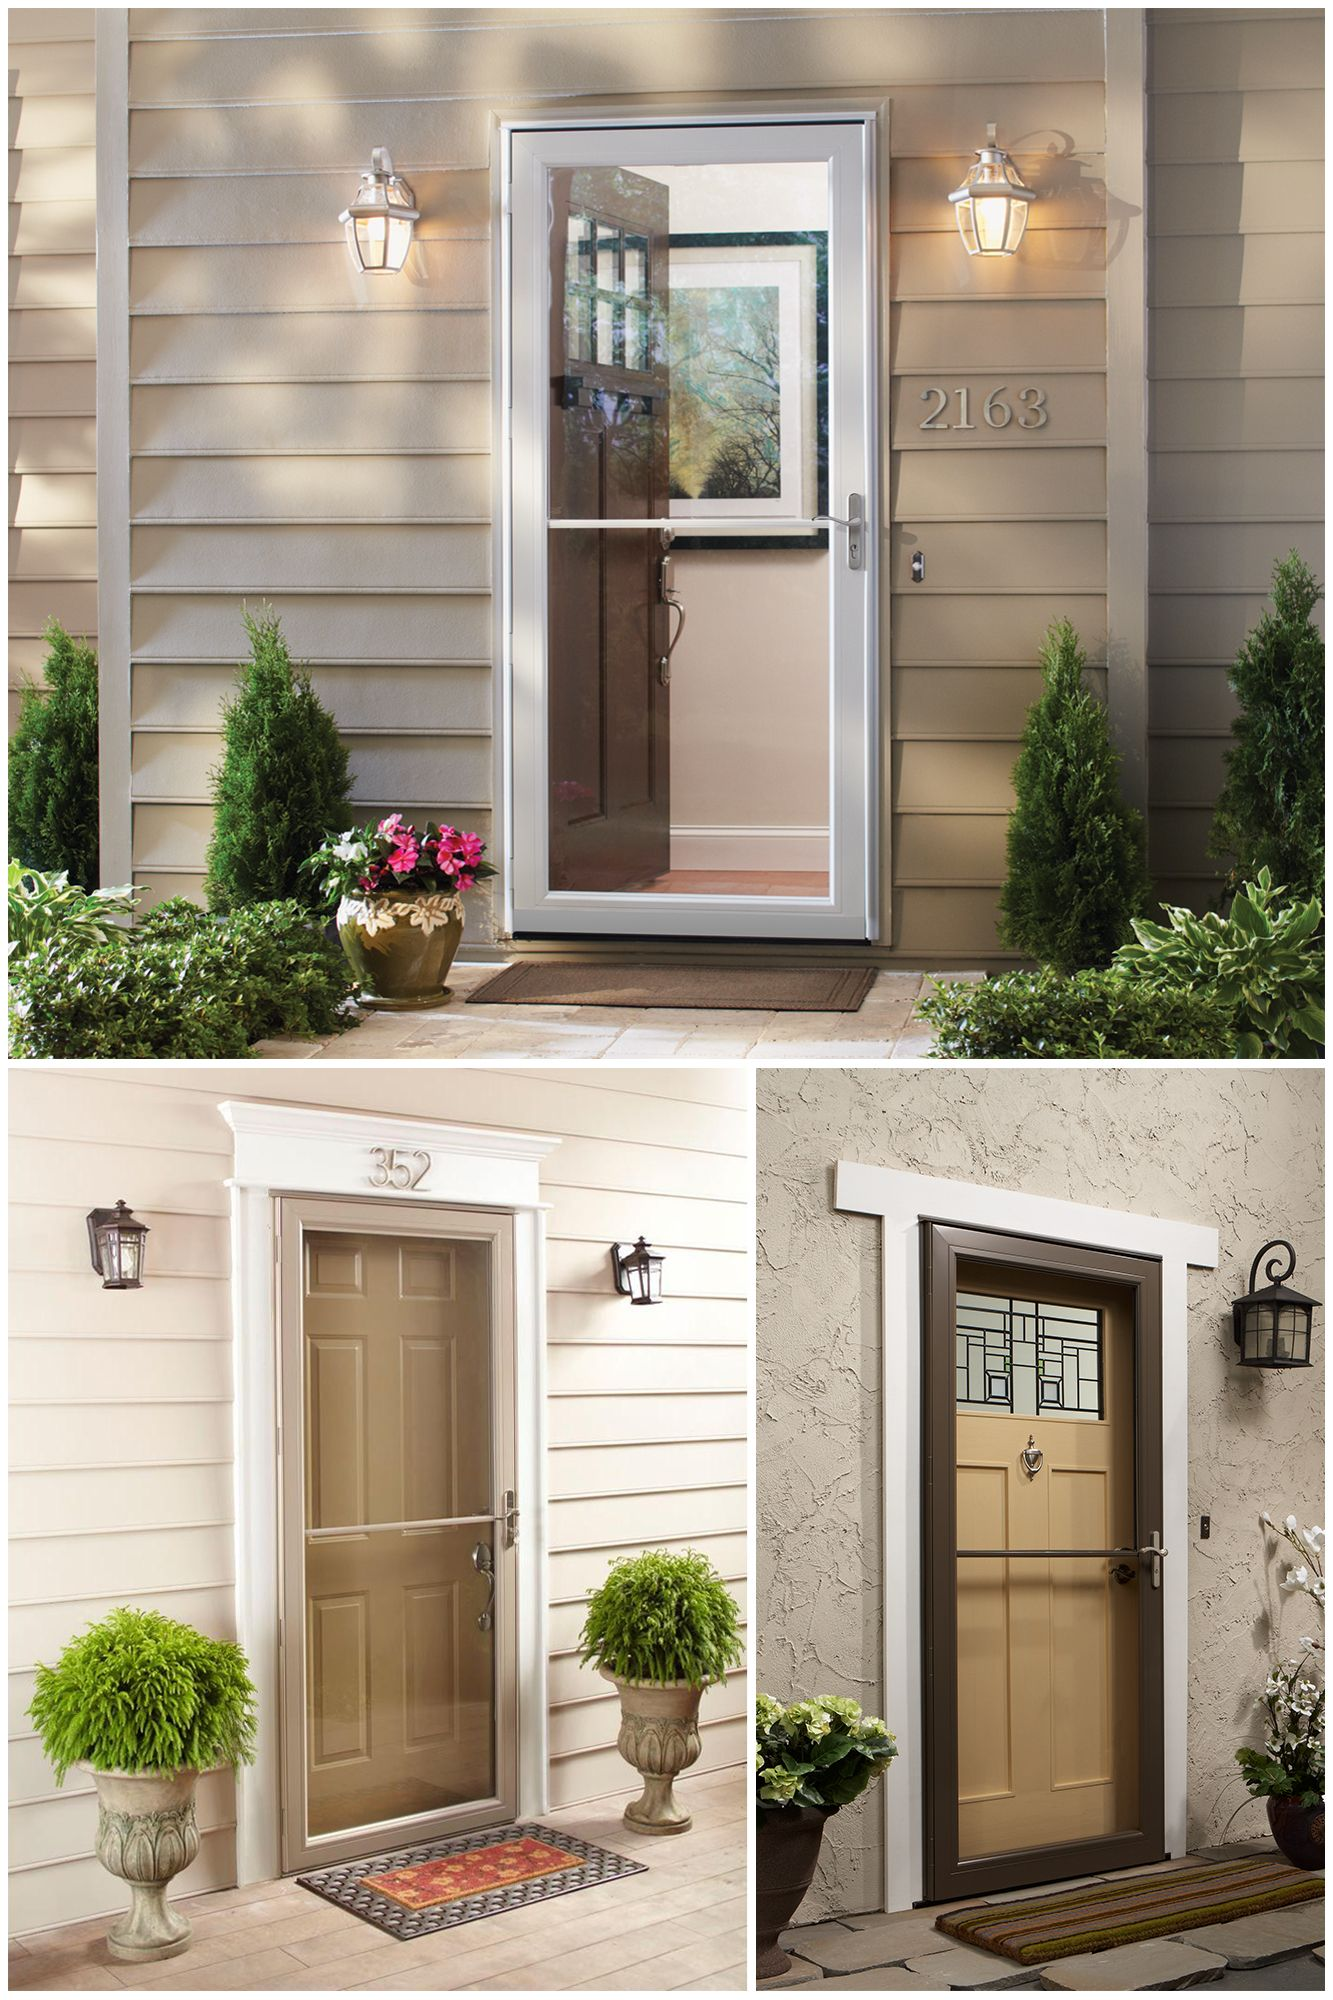 A Storm Door Can Help Save On Your Energy Bills If You